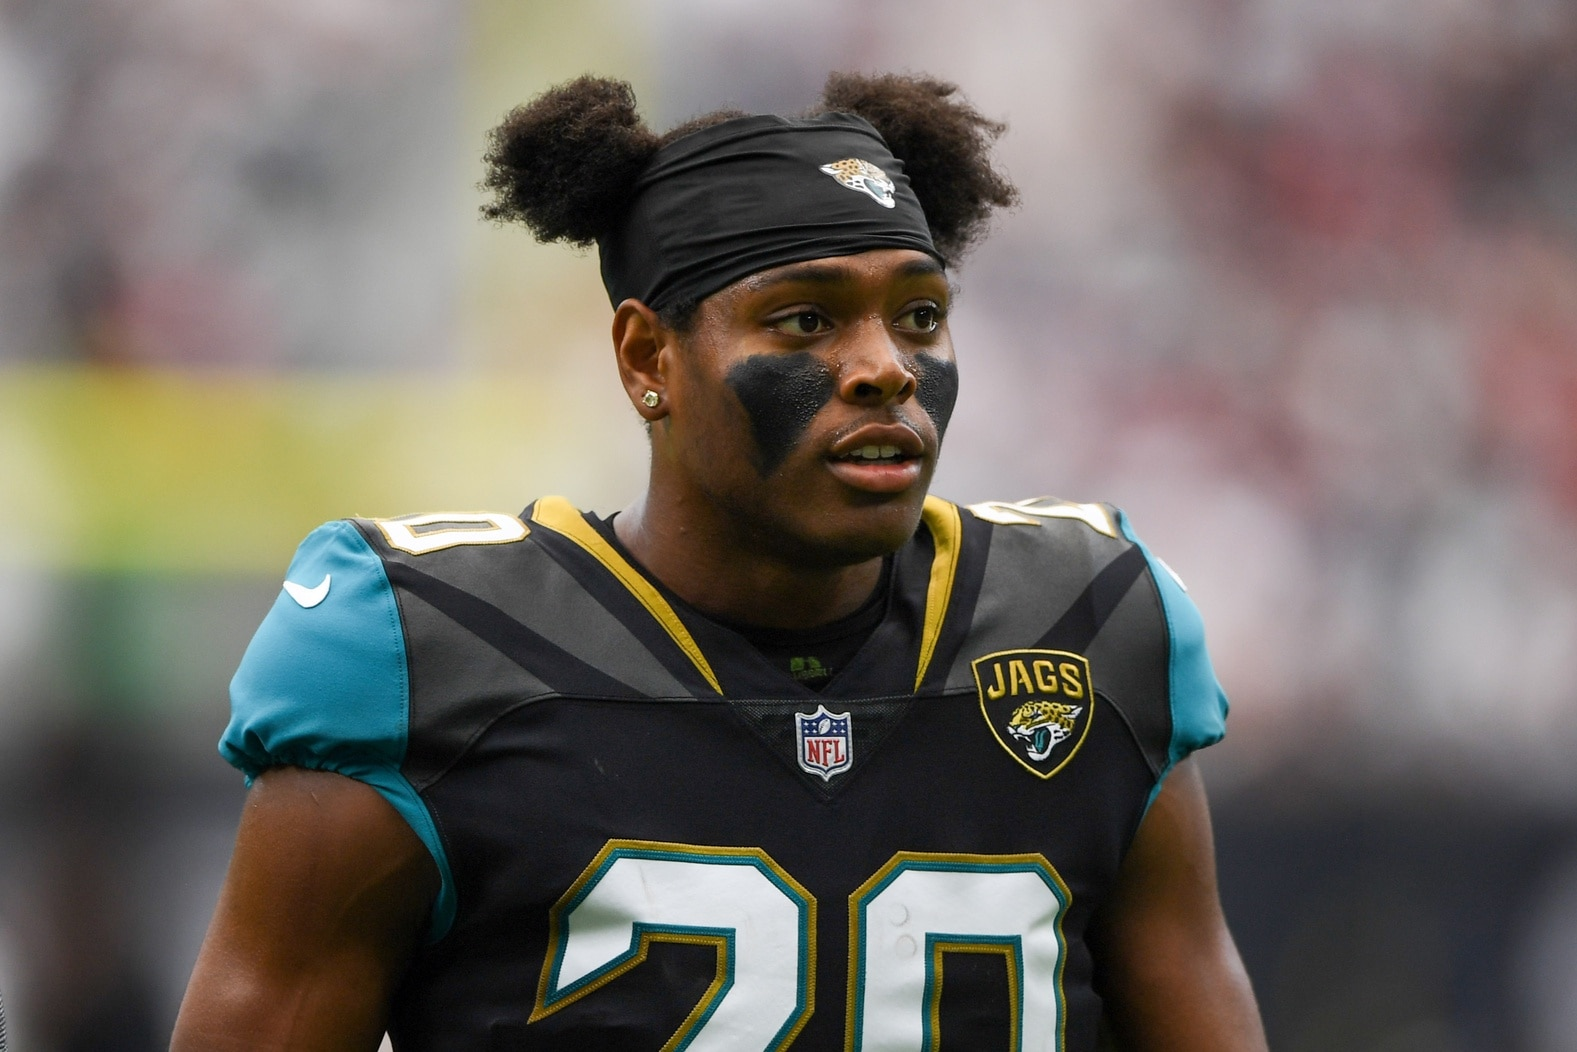 Tom Coughlin offers support to Jalen Ramsey over A.J ...